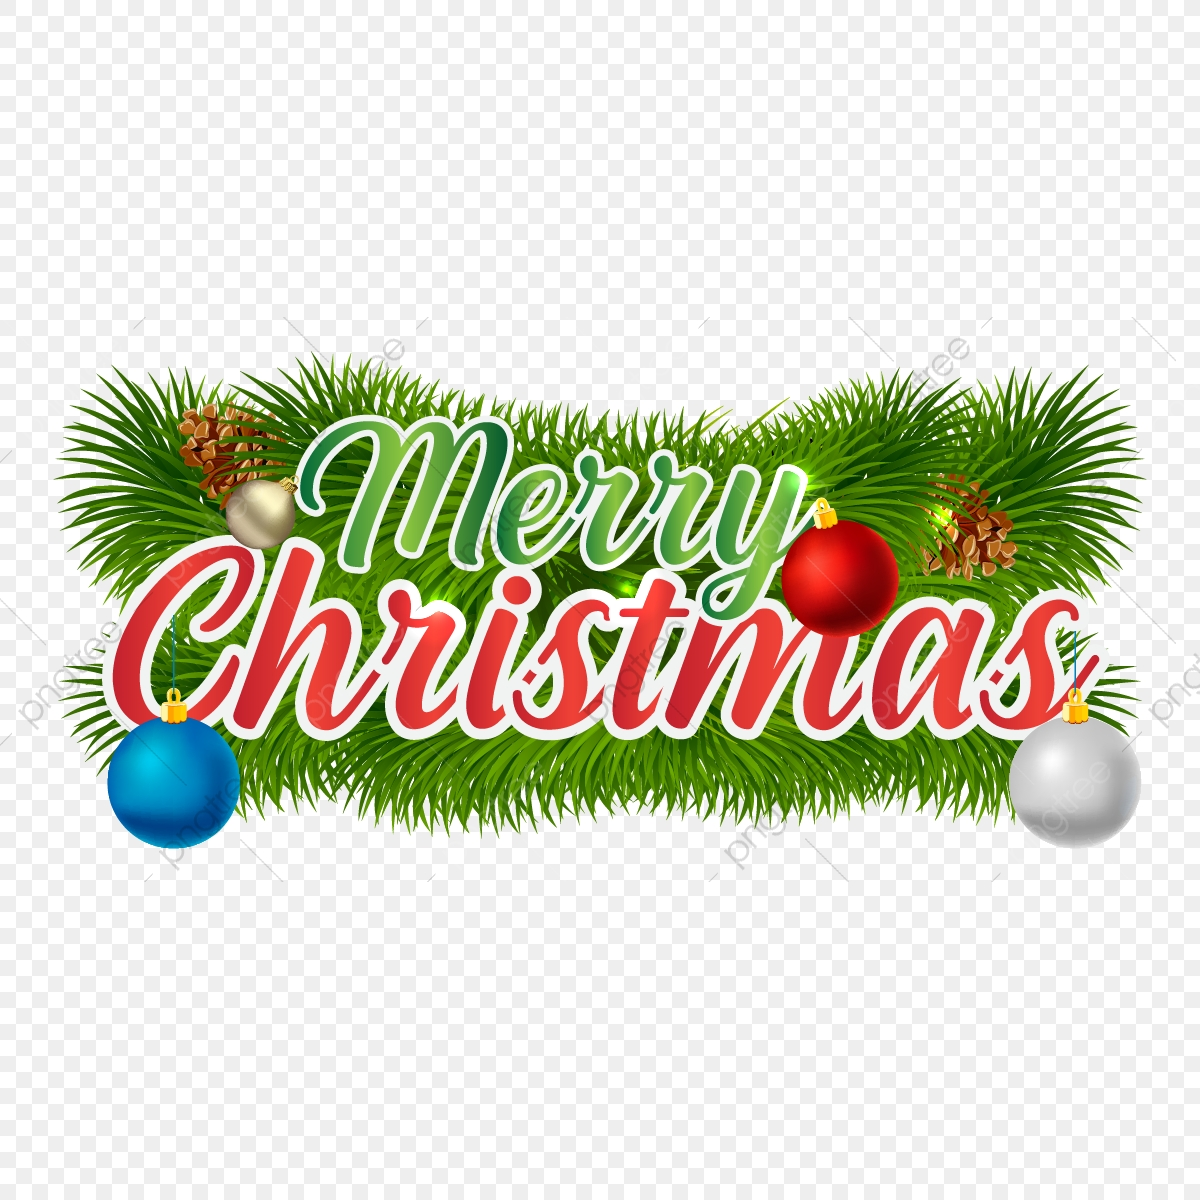 Merry Christmas Wishes.Creative Merry Christmas Wishes Label With Xmas Elements